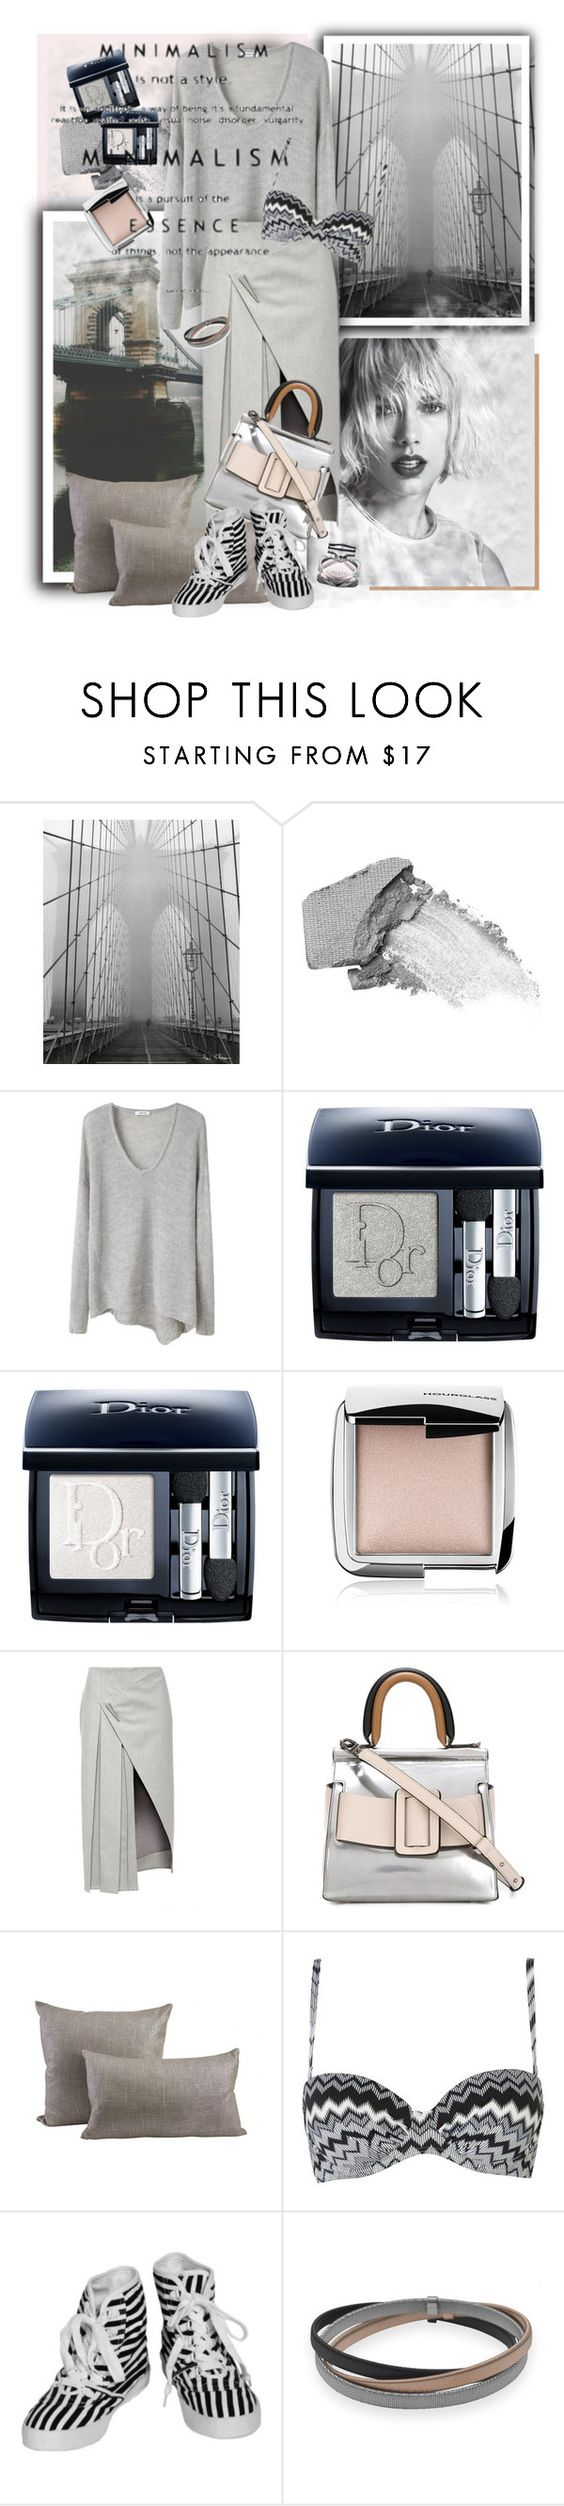 """MOOD: Fog"" by ksenia-lo ❤ liked on Polyvore featuring Urban Decay, Helmut Lang, Christian Dior, Hourglass Cosmetics, Prabal Gurung, Boyy, Jayson Home, John Lewis, Minimarket and BillyTheTree"